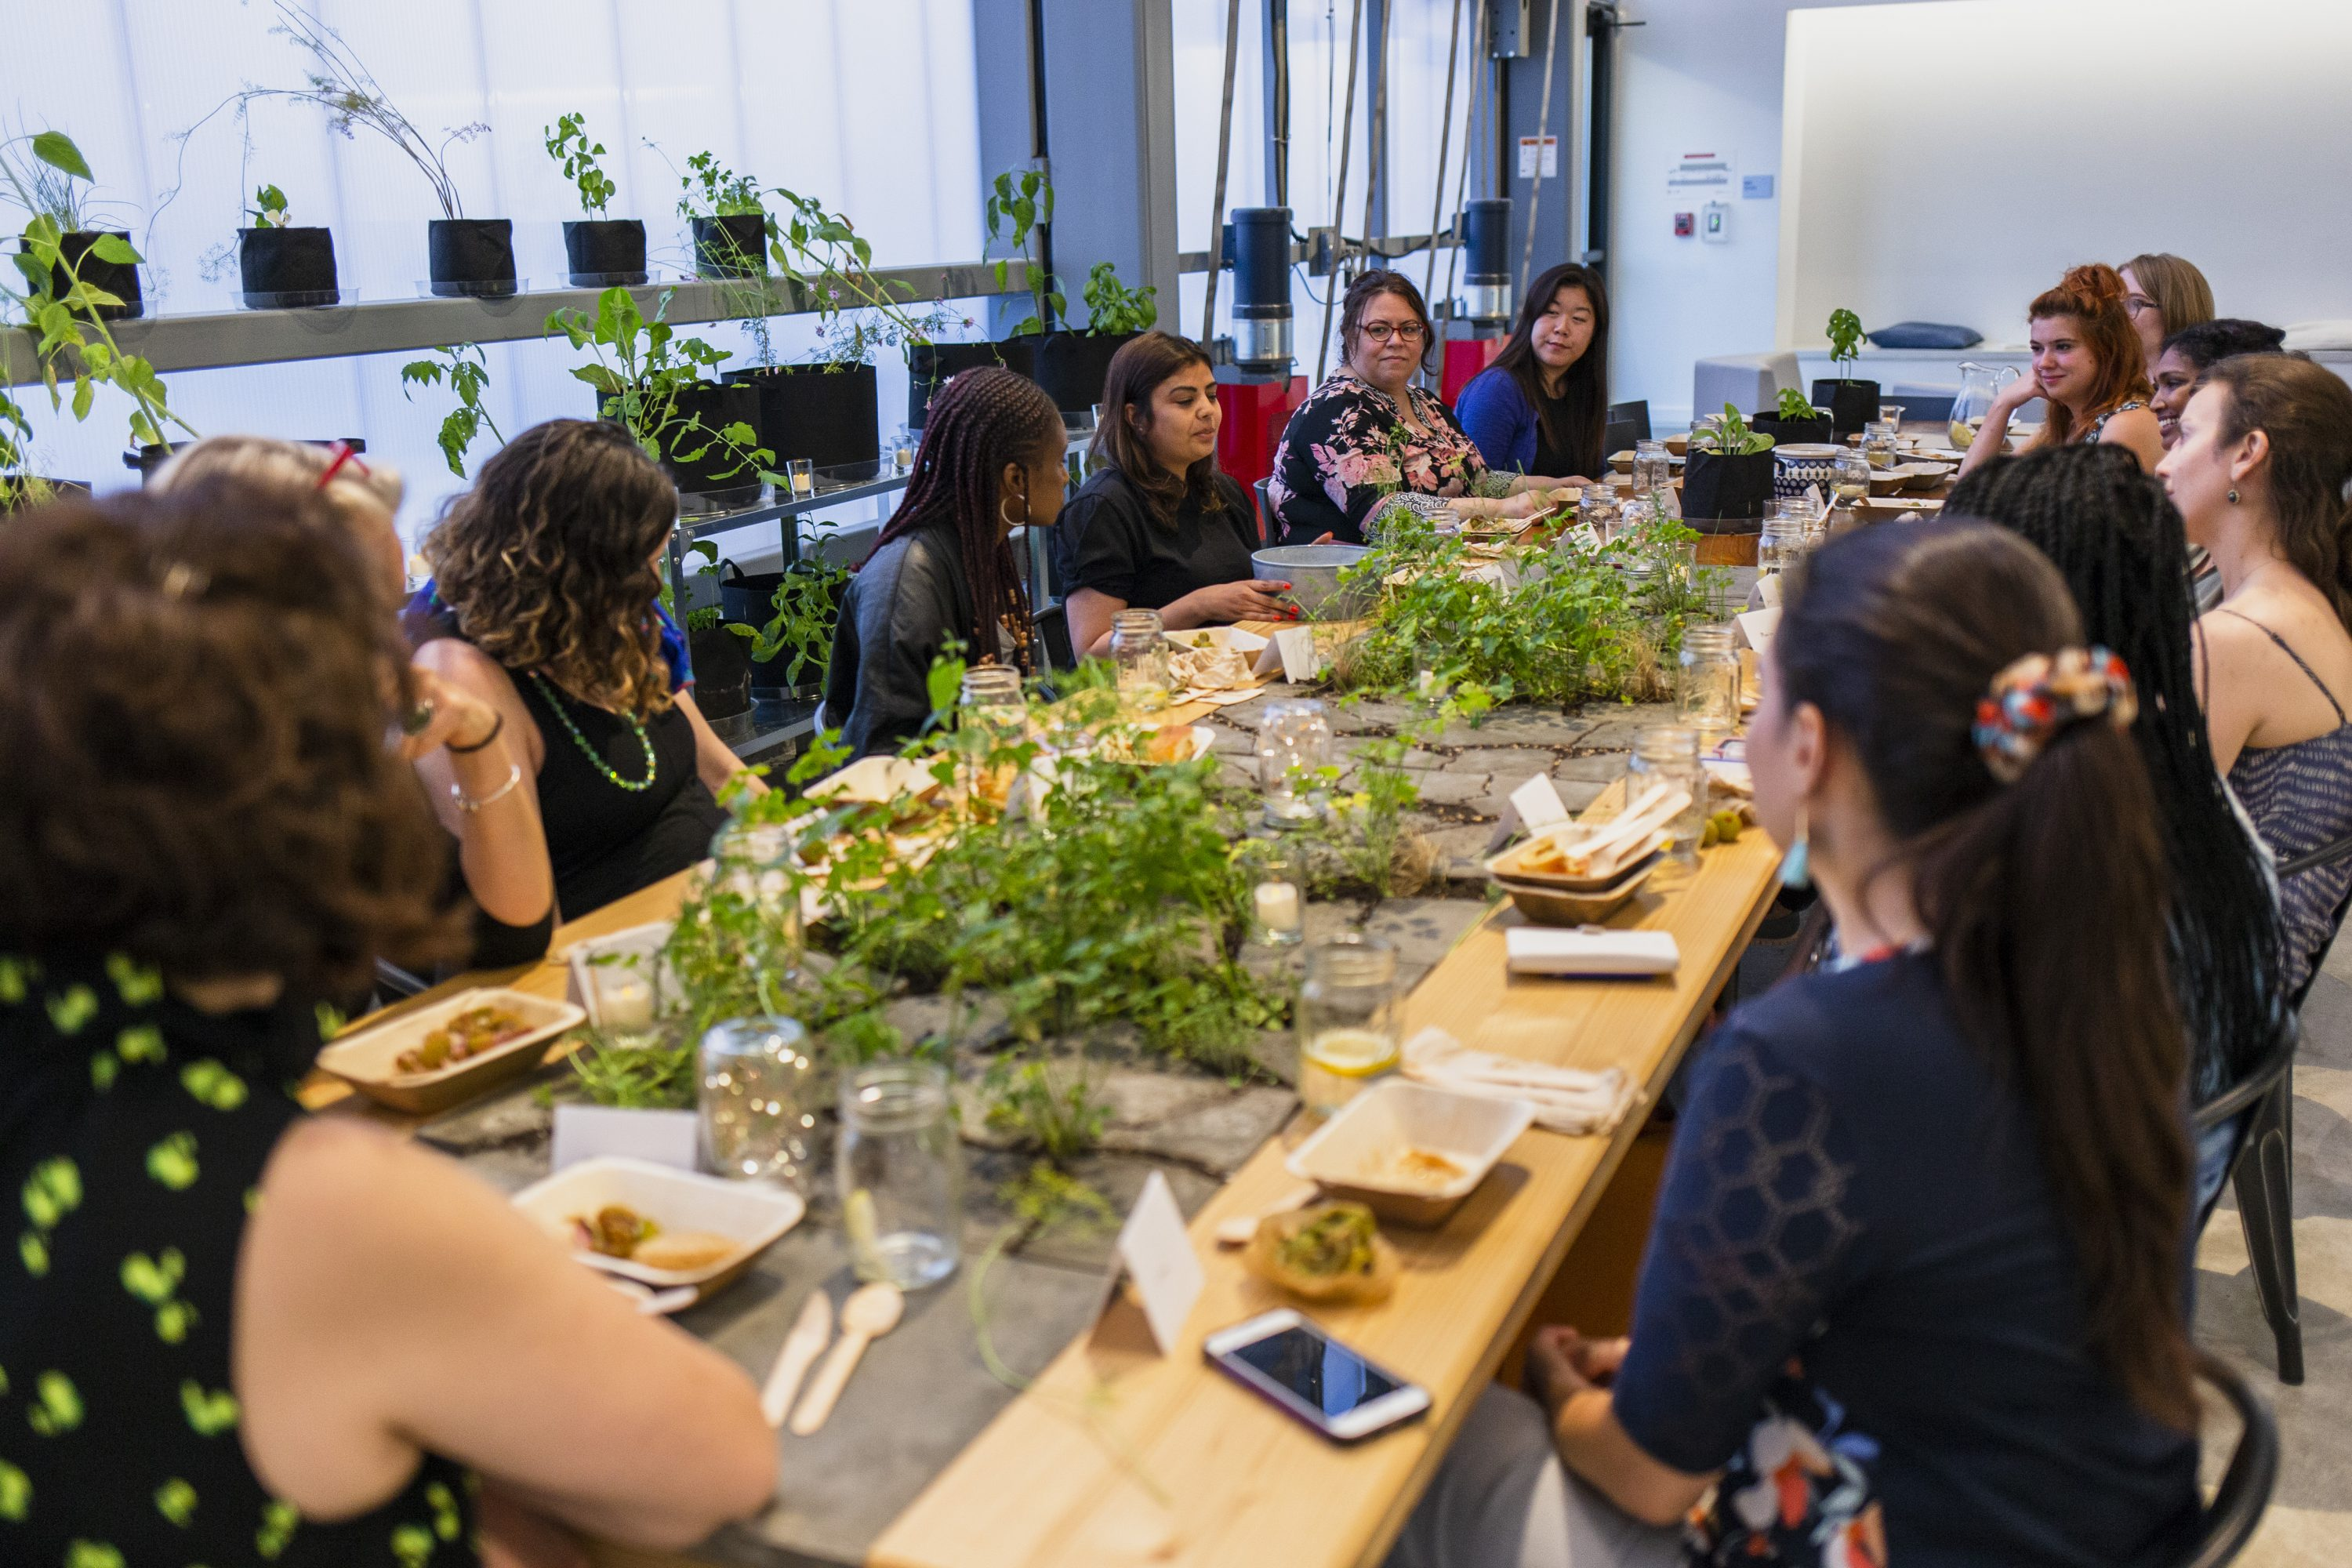 A diverse group of women sit around a long wooden table set with food and a long centerpiece of green, leafy plants sprouting out of gray rocks. Behind them are shelves of green plants growing near a wall of windows, and a white wall.